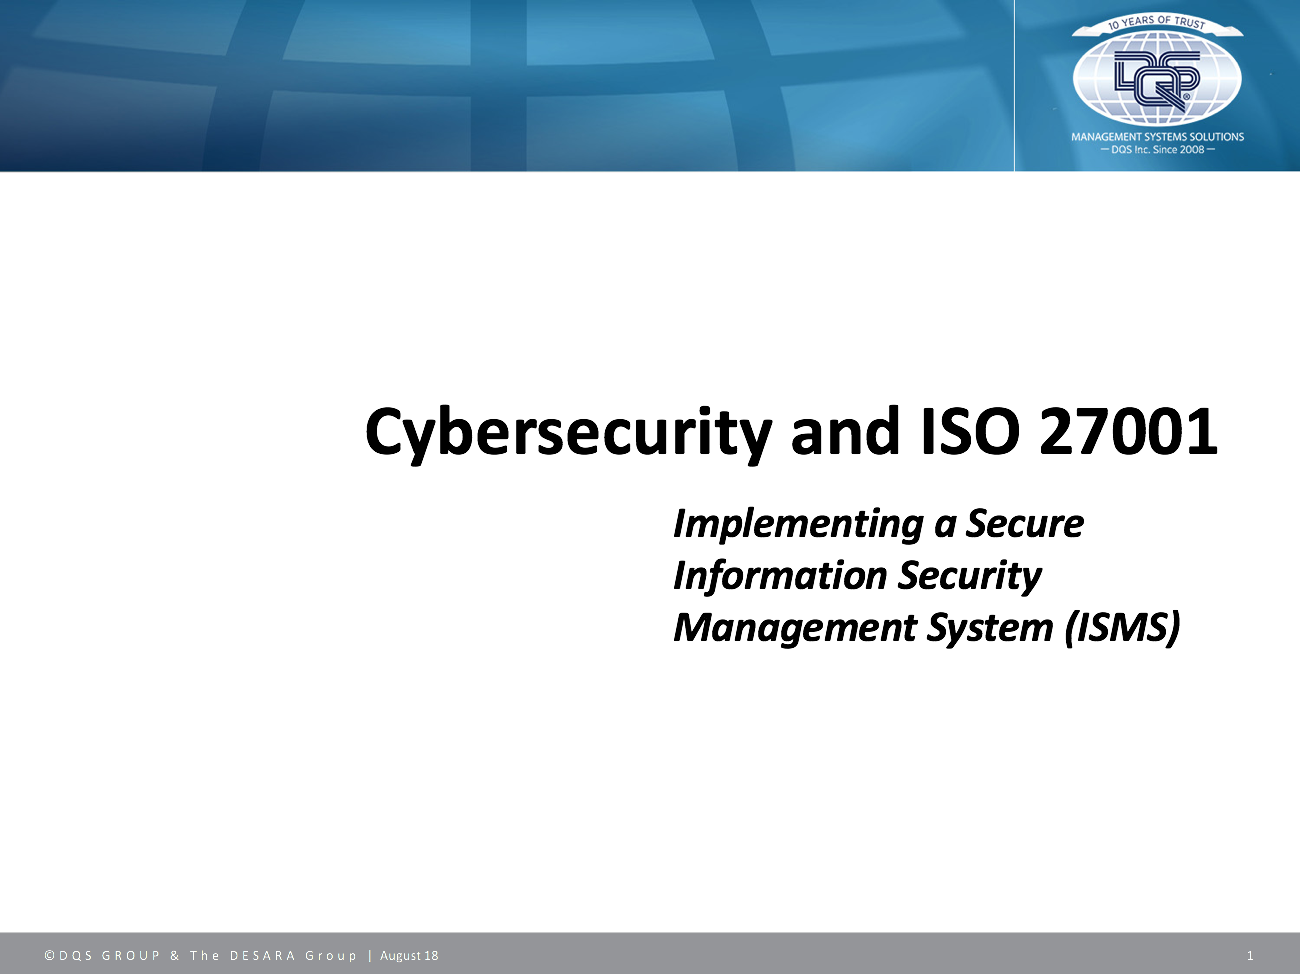 Cybersecurity and ISO 27001: Implementing a Secure Information Security Management System (ISMS)